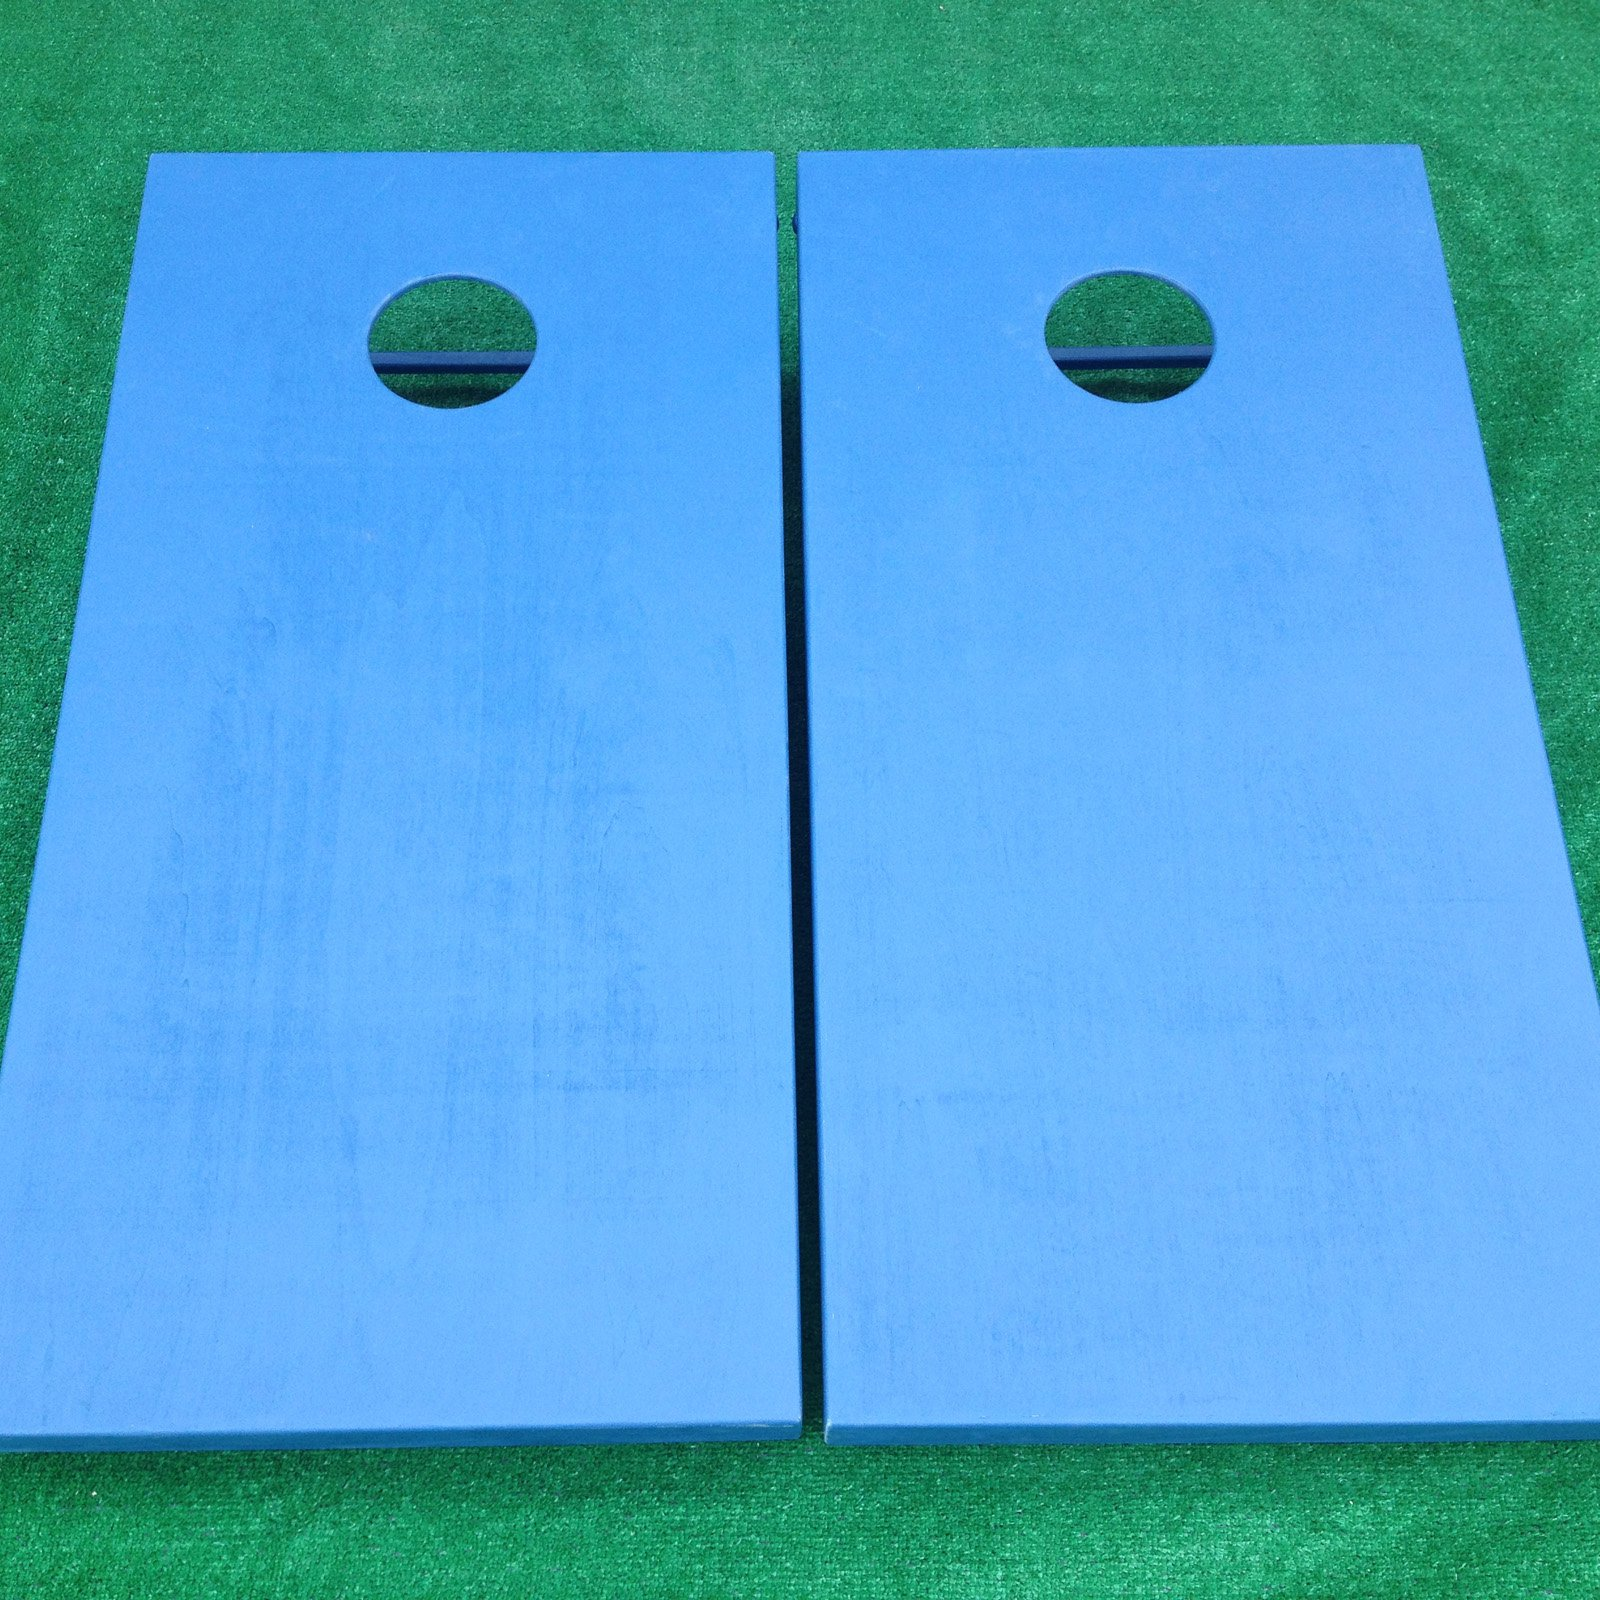 Painted Tournament Wooden Cornhole Bean Bag Toss Set - Navy Blue - Baby Blue & Maroon